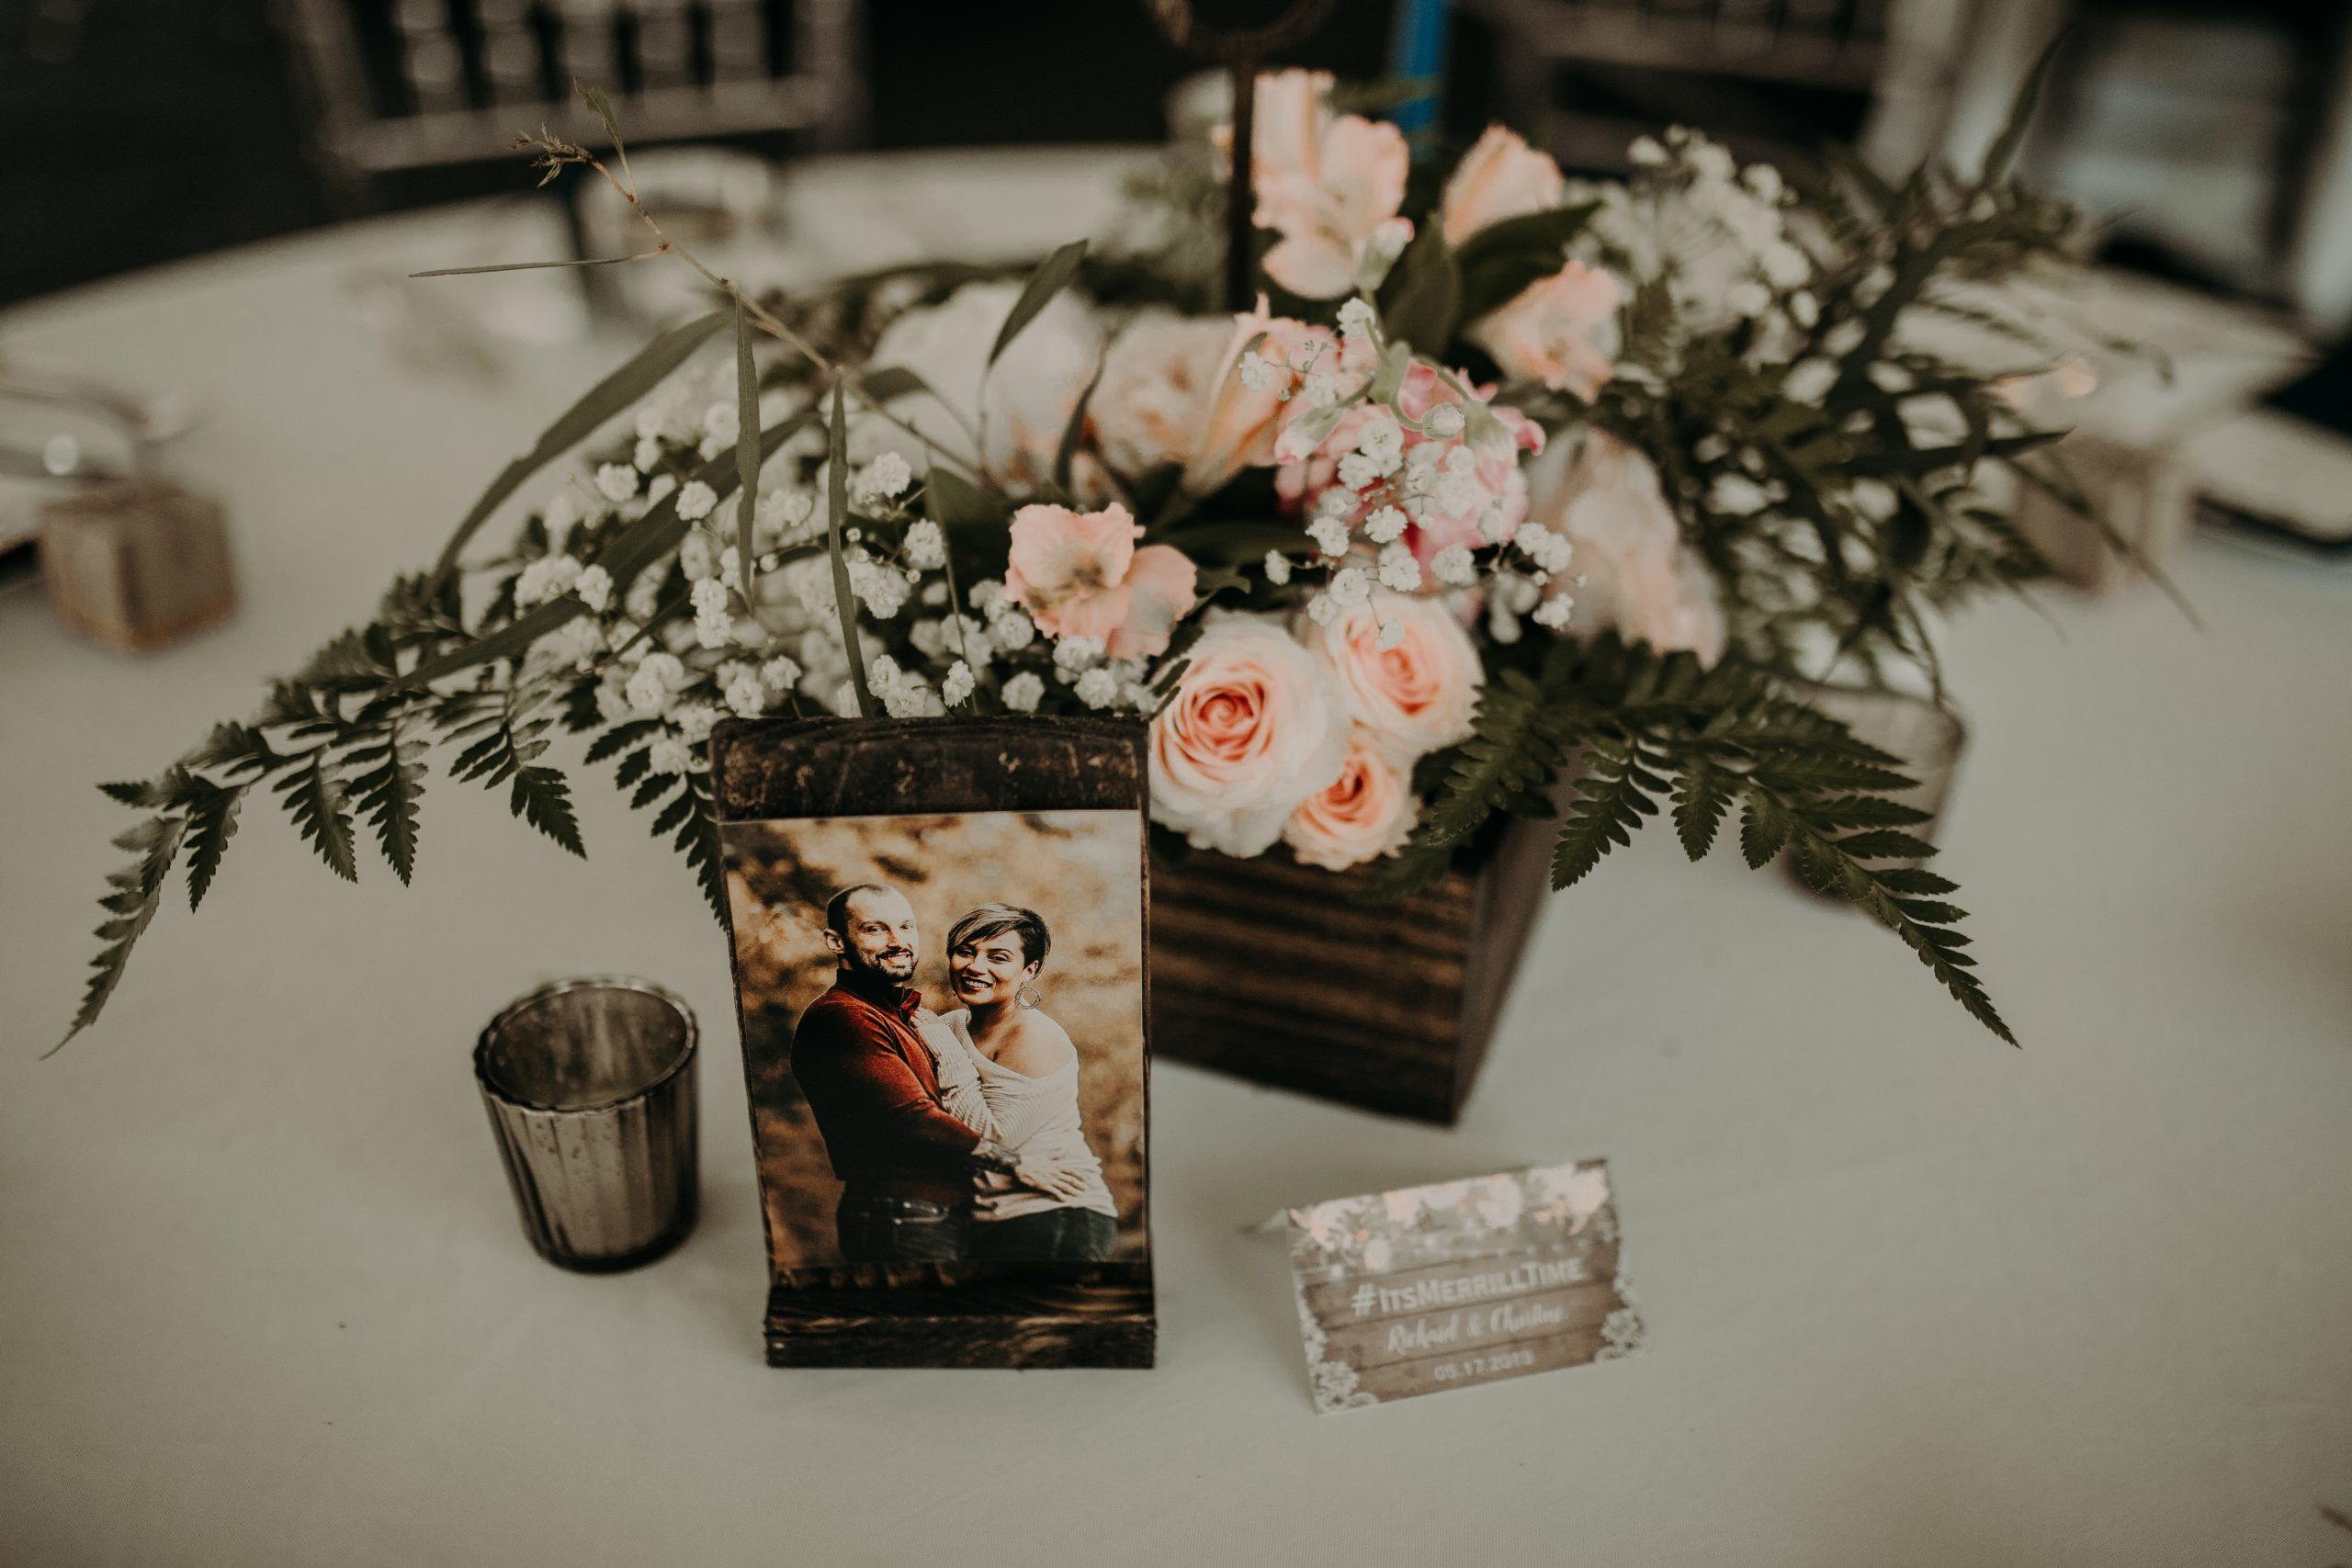 Pictures of the couple are placed on each table to reiterate the love they have for each other. Christine and Richard wed on the Chestnut Hill Villa grounds on May of 2019. This organic ethereal styled wedding was captured by Garnet Dahlia Photography and featured on Dream Weddings.